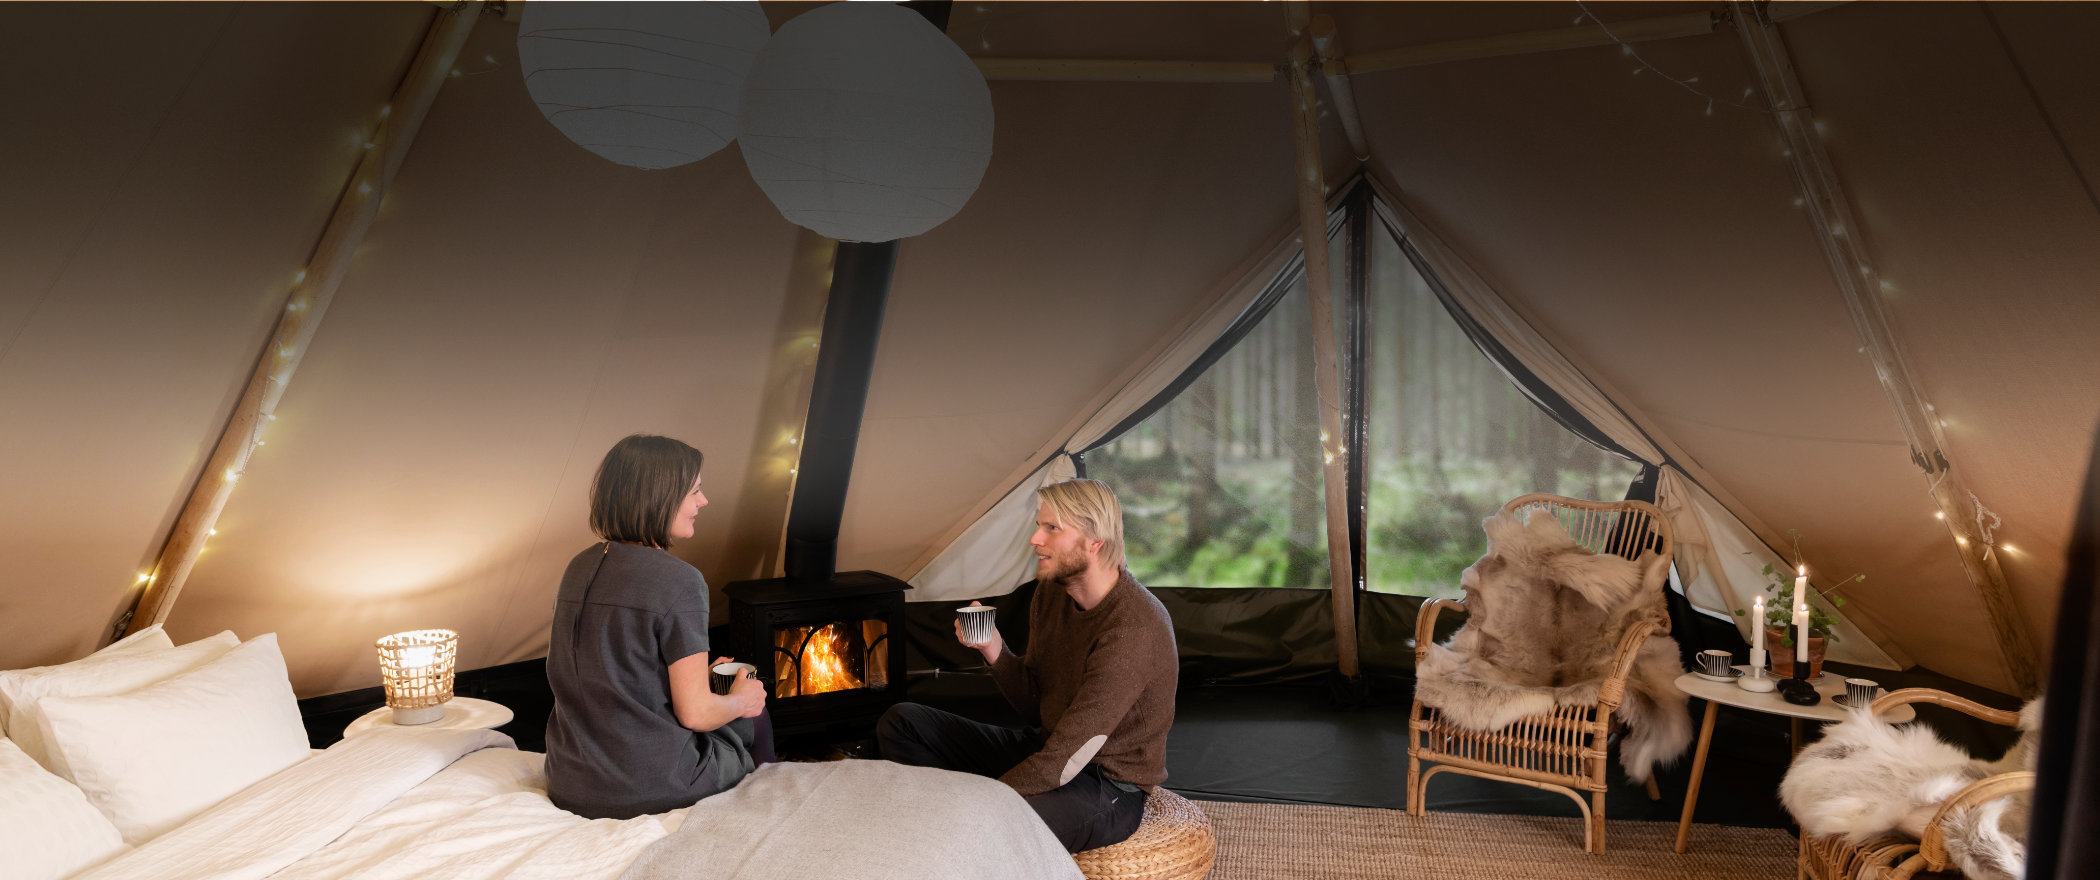 Aurum, our new luxurious glamping tent, for both elegance and comforts of home in the outdoors